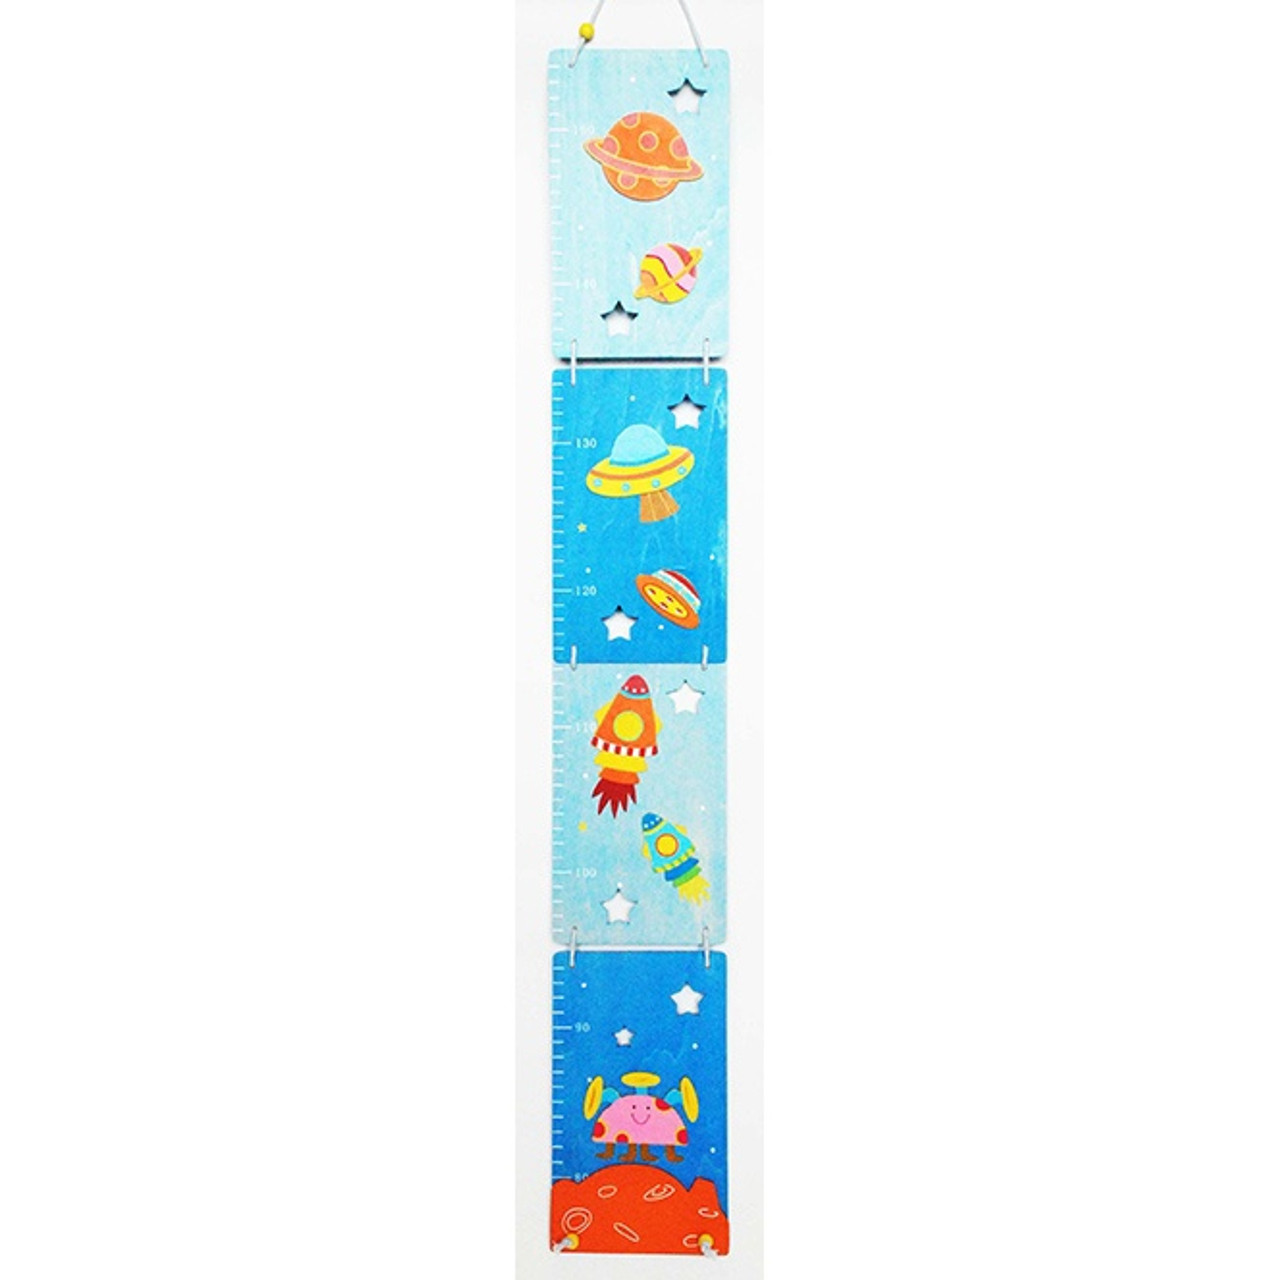 Toyslink Space Growth Chart at Baby Barn Discounts This Space themed growth chart features rocket ships, stars, planets and even aliens!